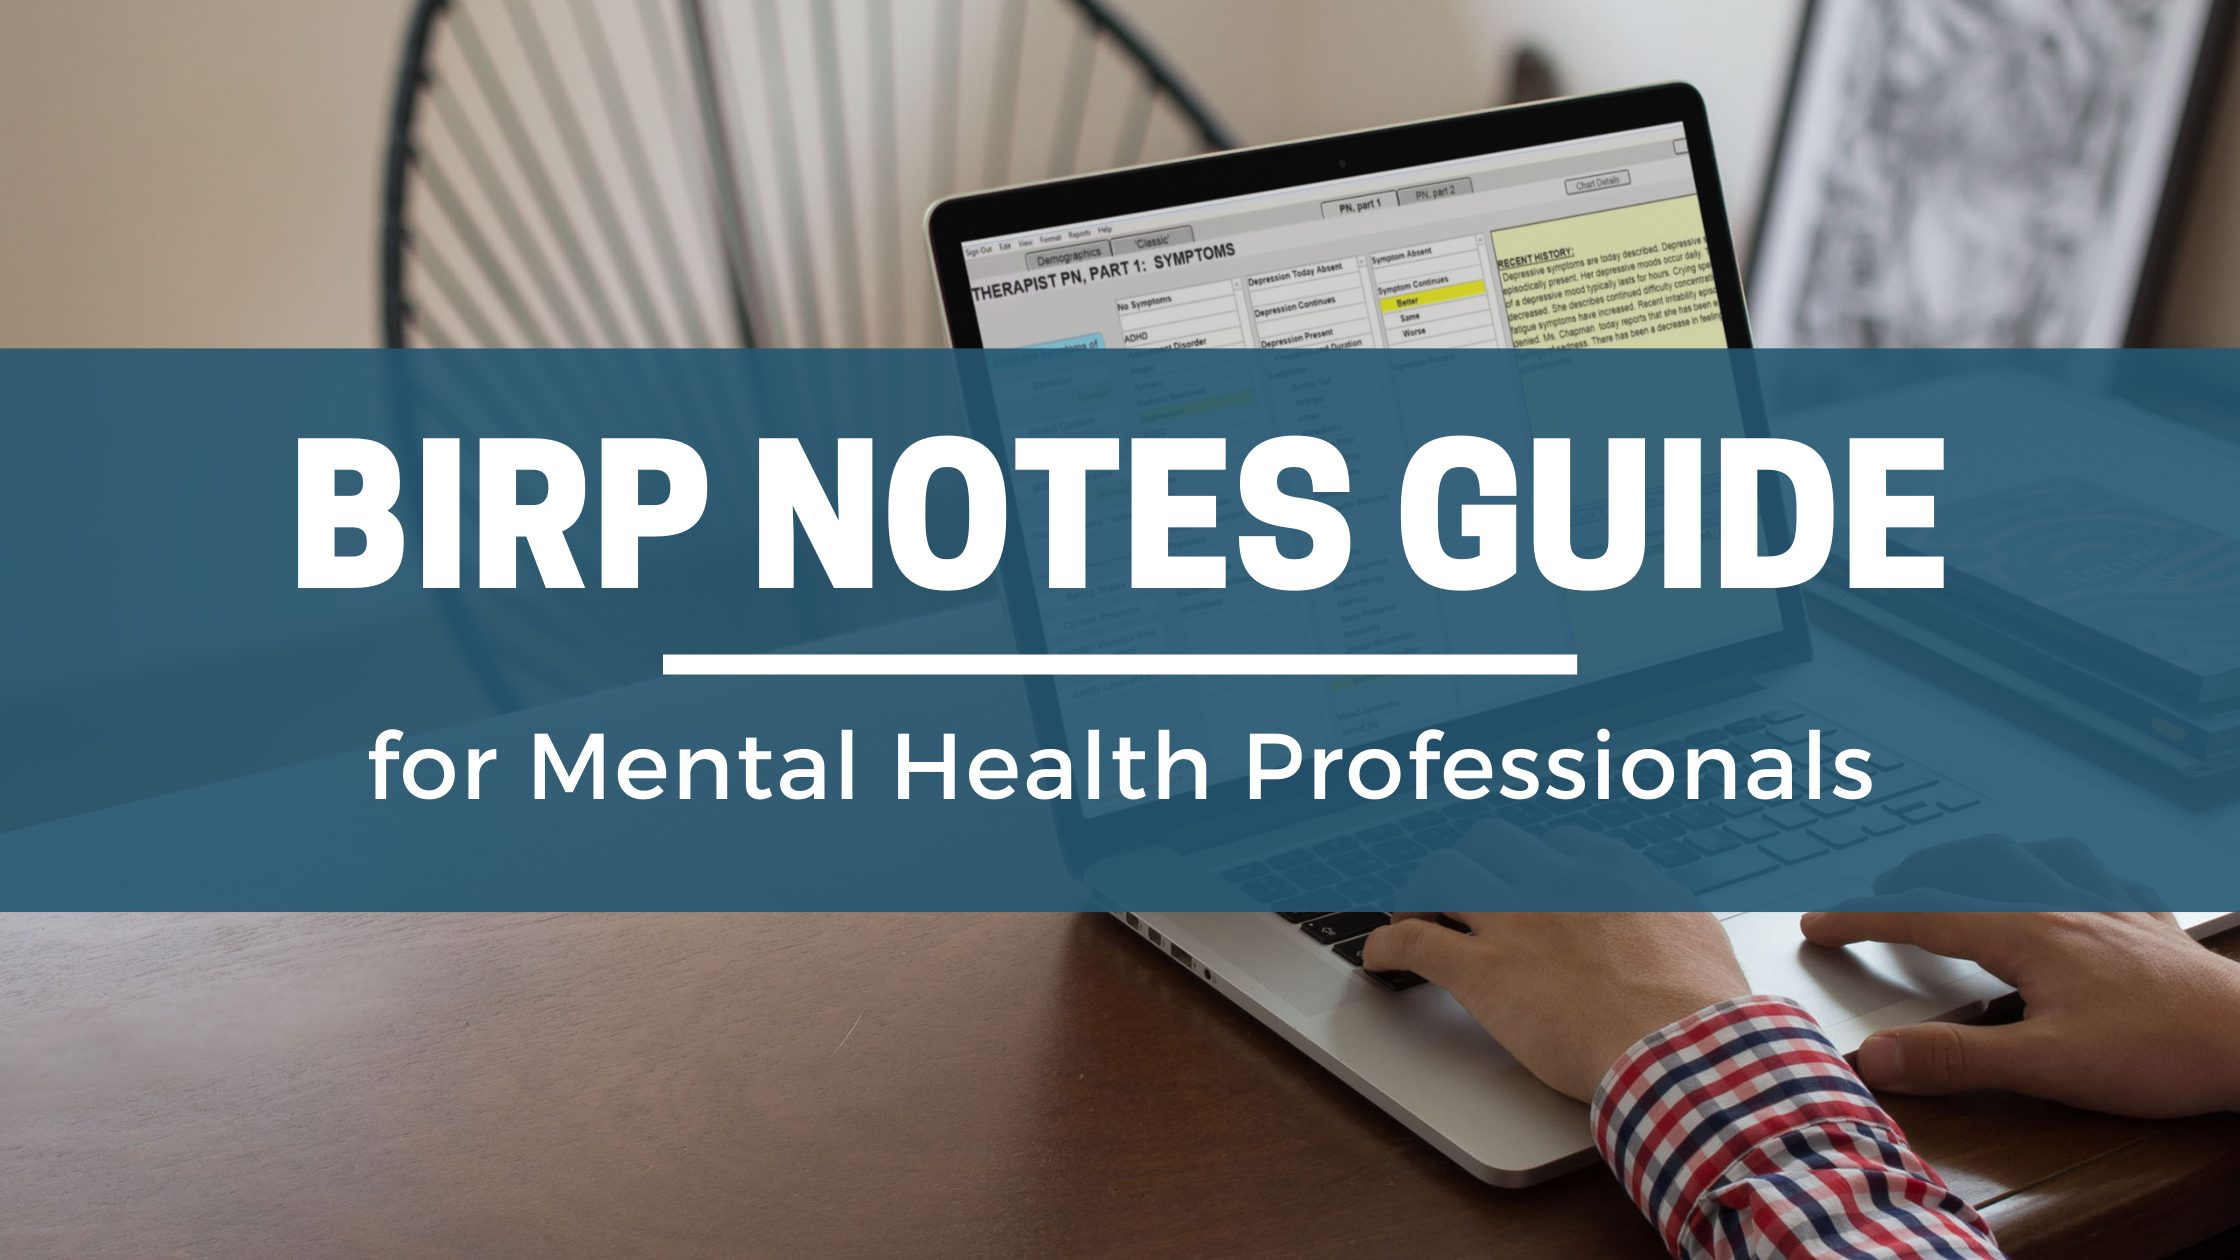 BIRP Notes Guide